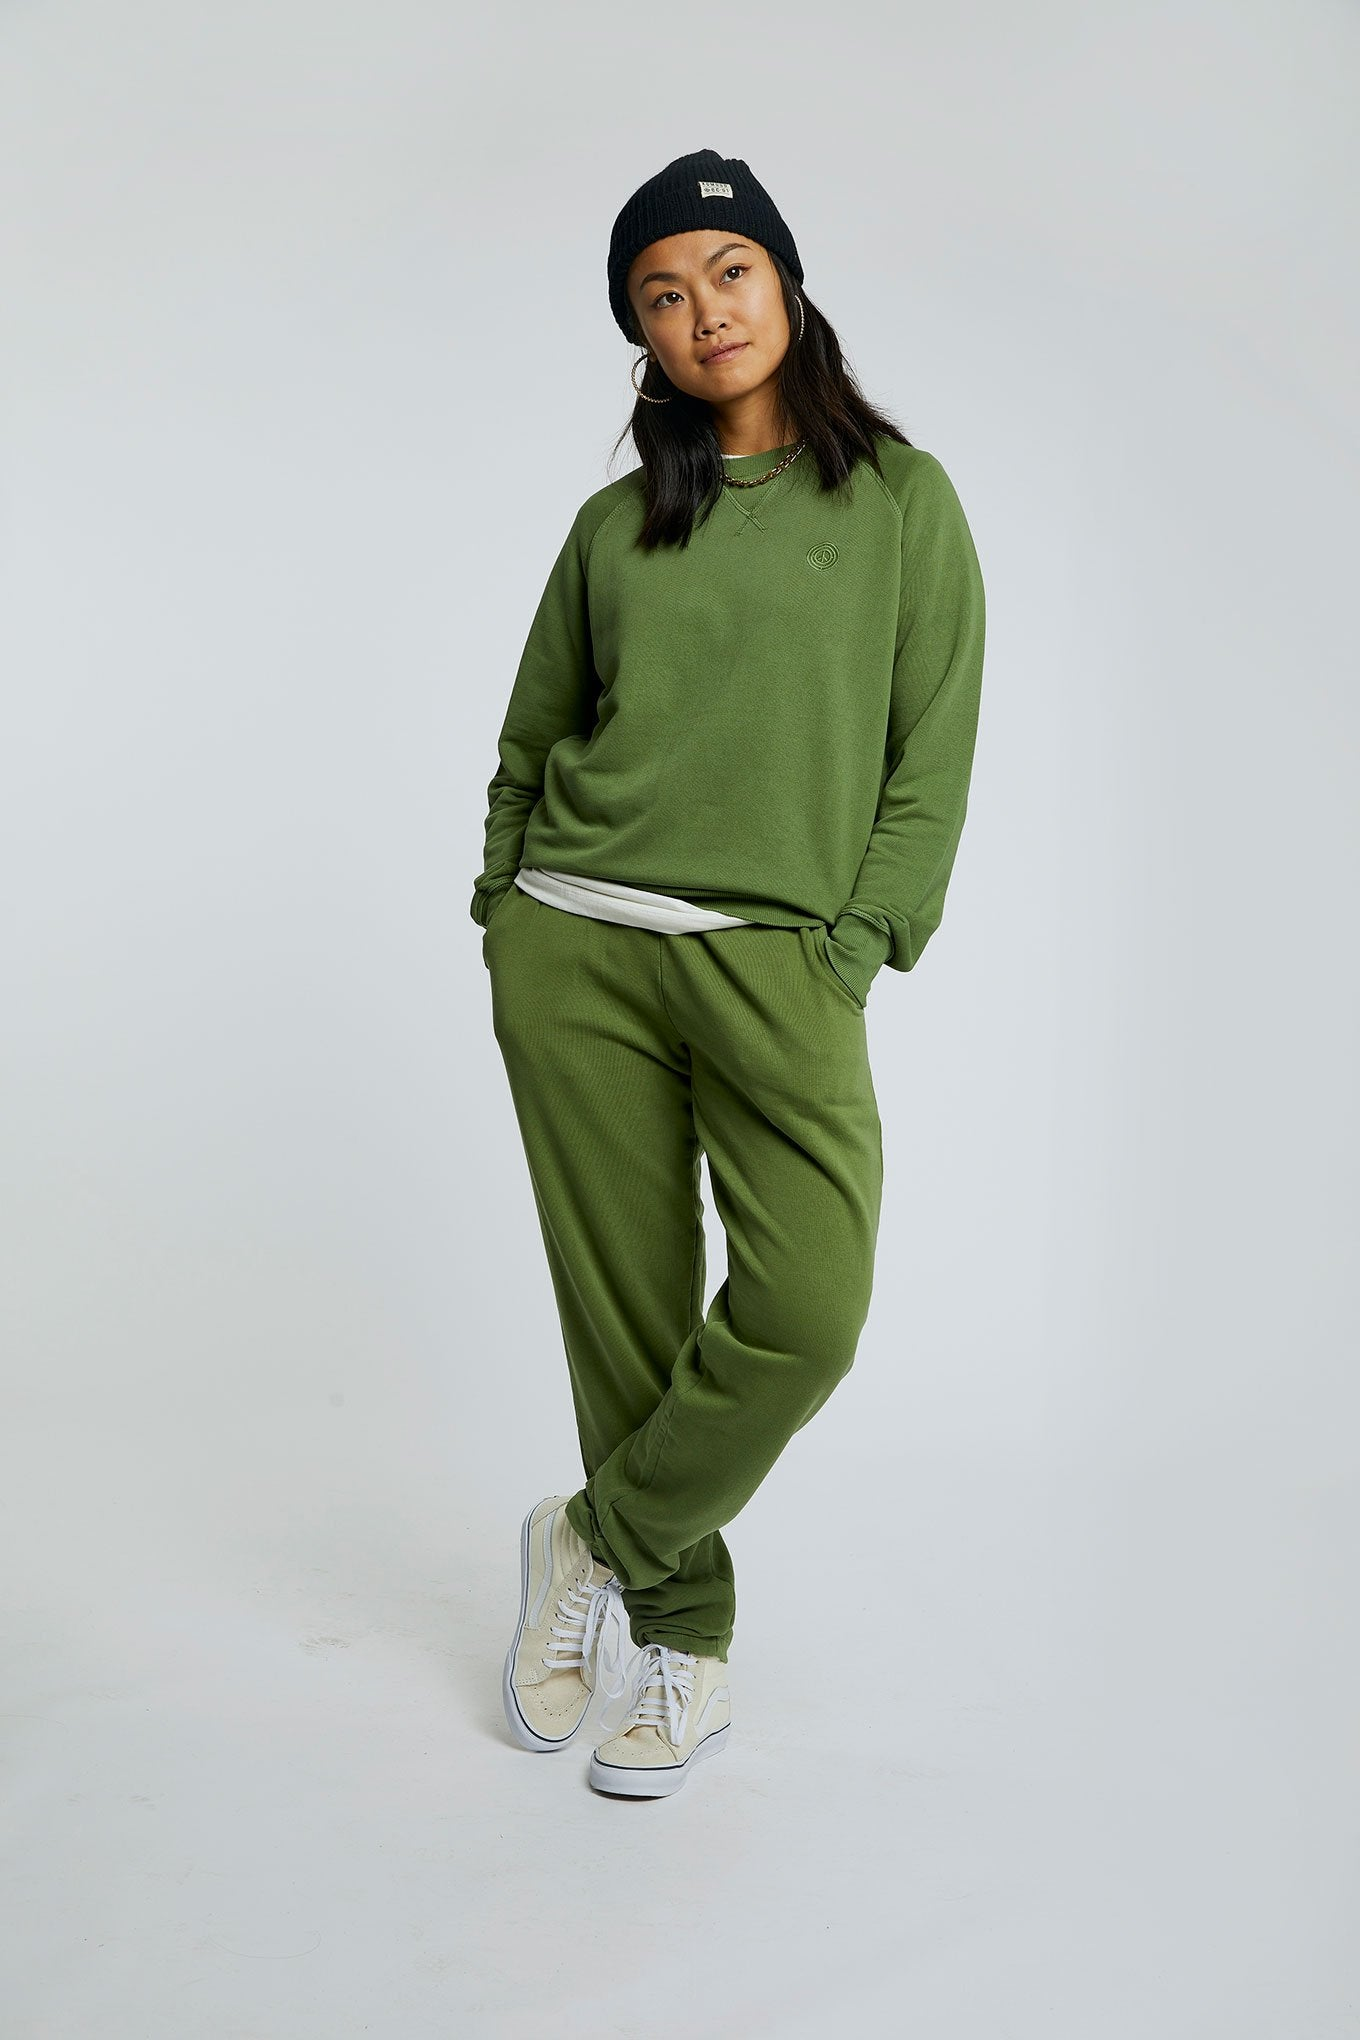 OLYMPIA Womens - GOTS Organic Cotton Jogger Olive